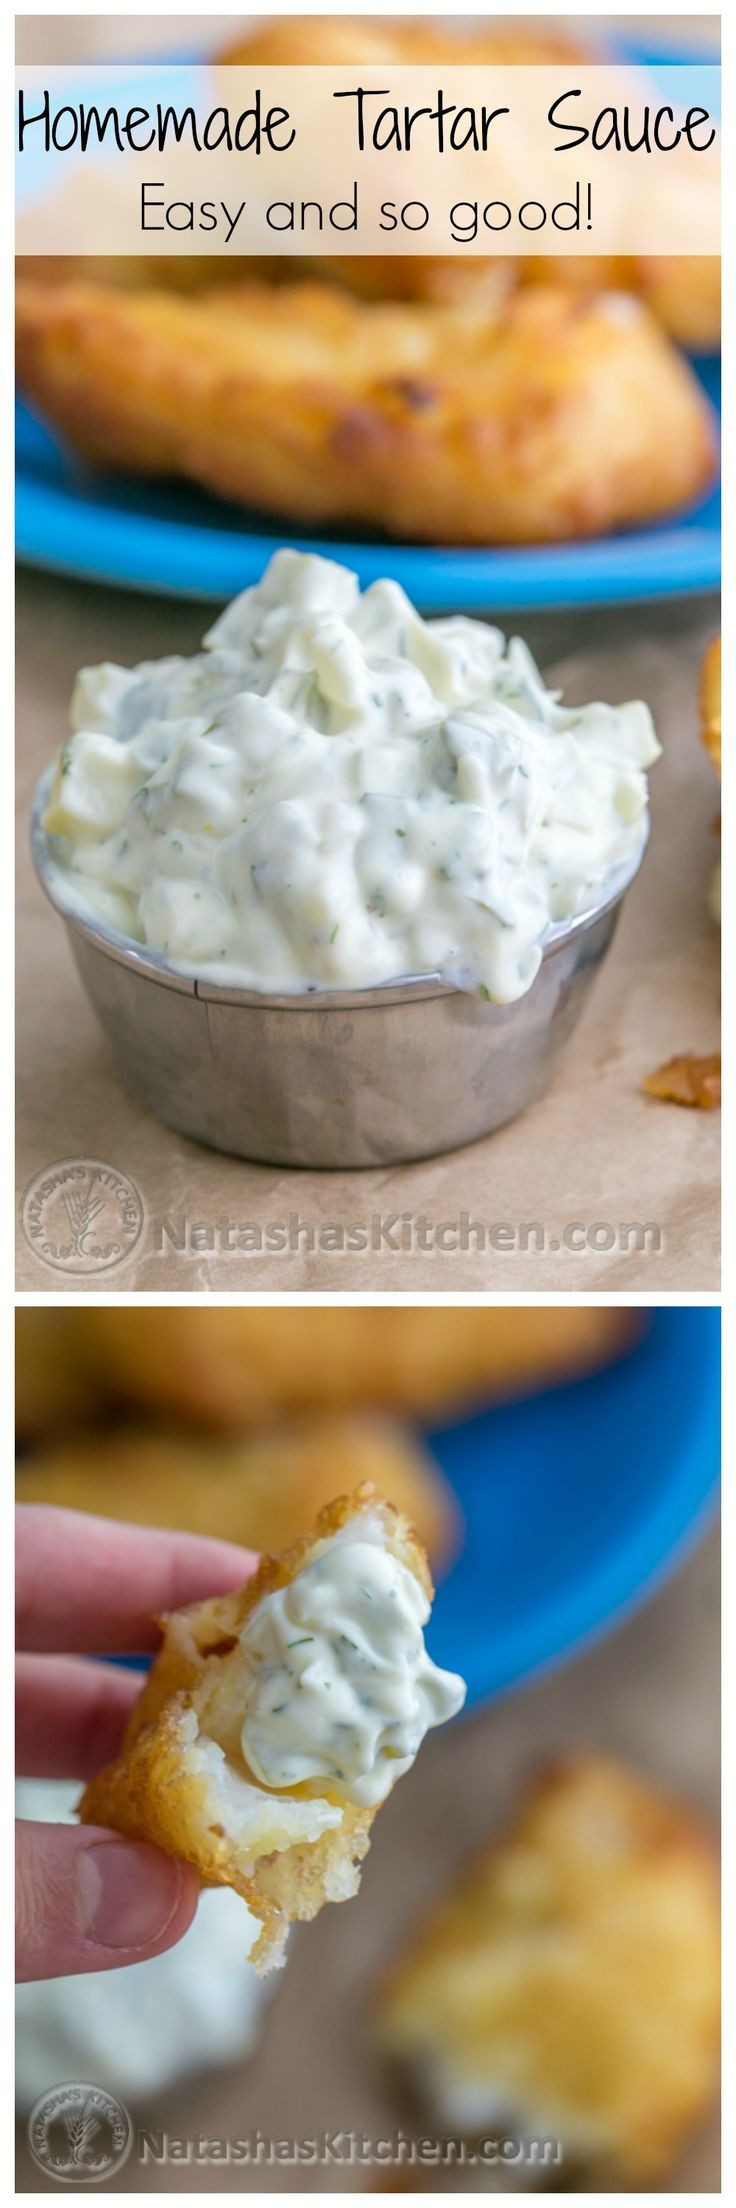 Tartar Sauce - Try this quick and easy tartar sauce recipe and you'll never want store-bought ...